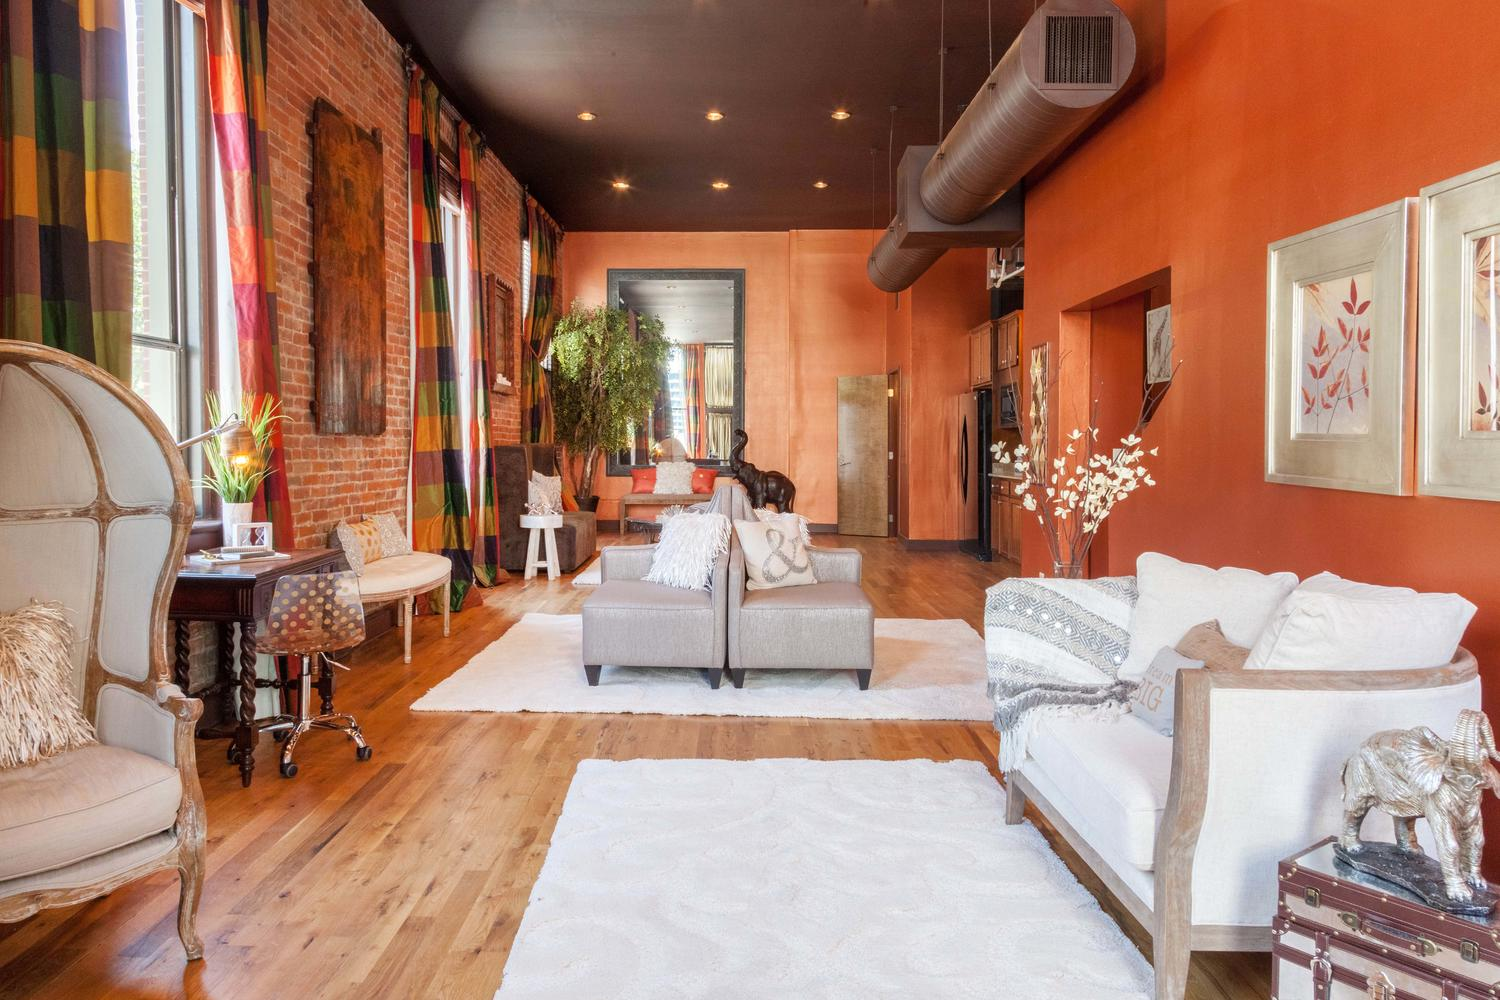 for Sale at Remarkable LiveWork Corner Loft in LoDo with Pool & Tennis Court 1768 Blake Street Denver, Colorado, 80202 United States